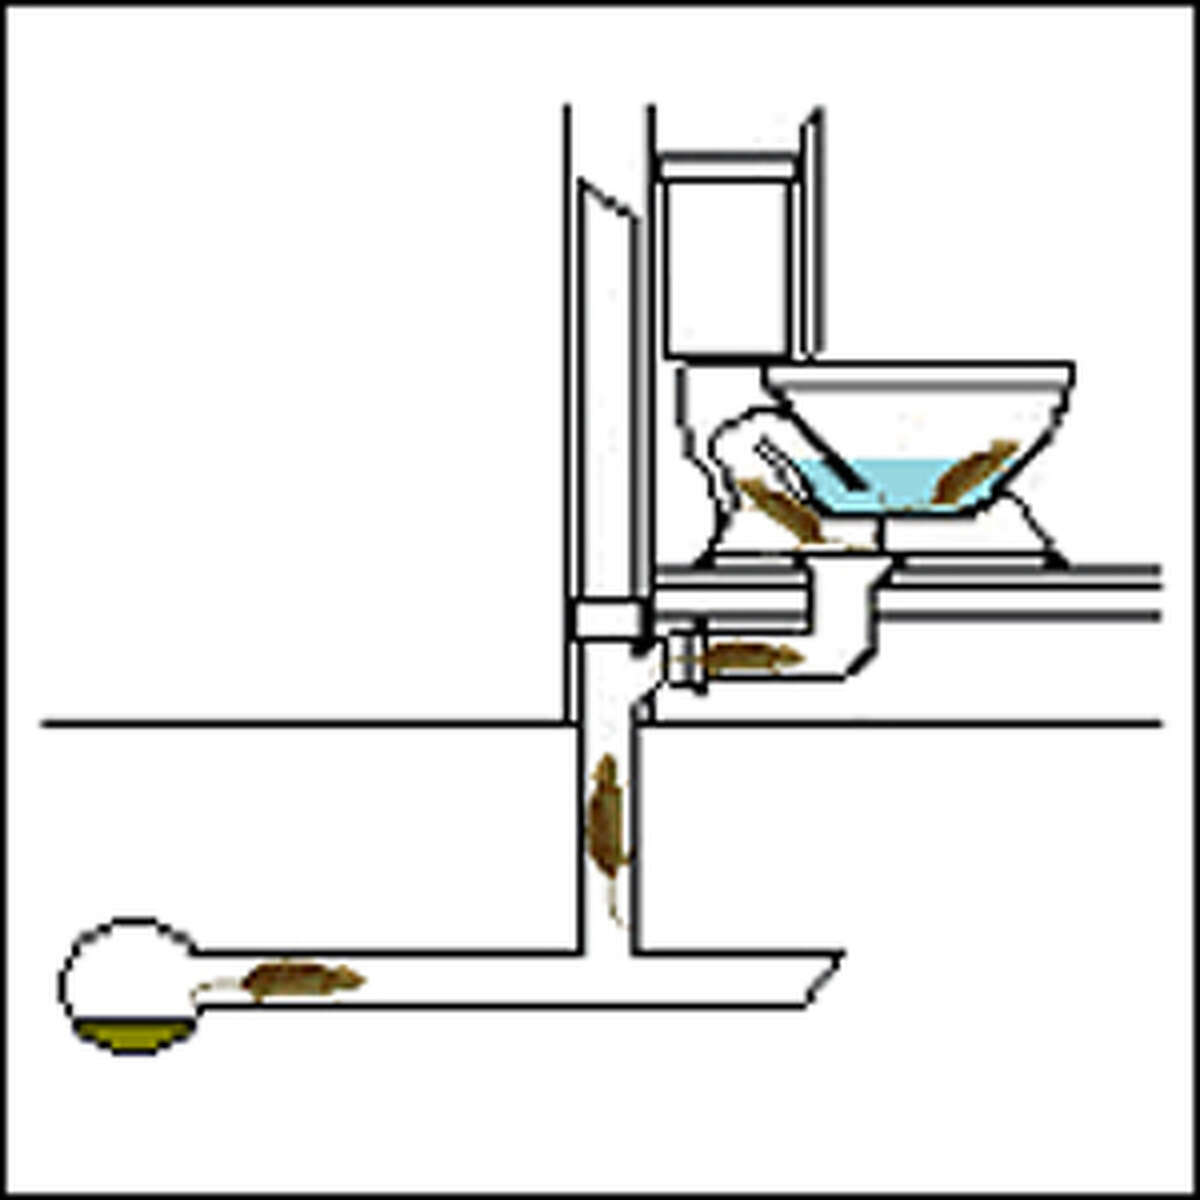 How does a rat get in your toilet? Rats follow food smells in the drains that lead from your house to the sewer system. They can climb the